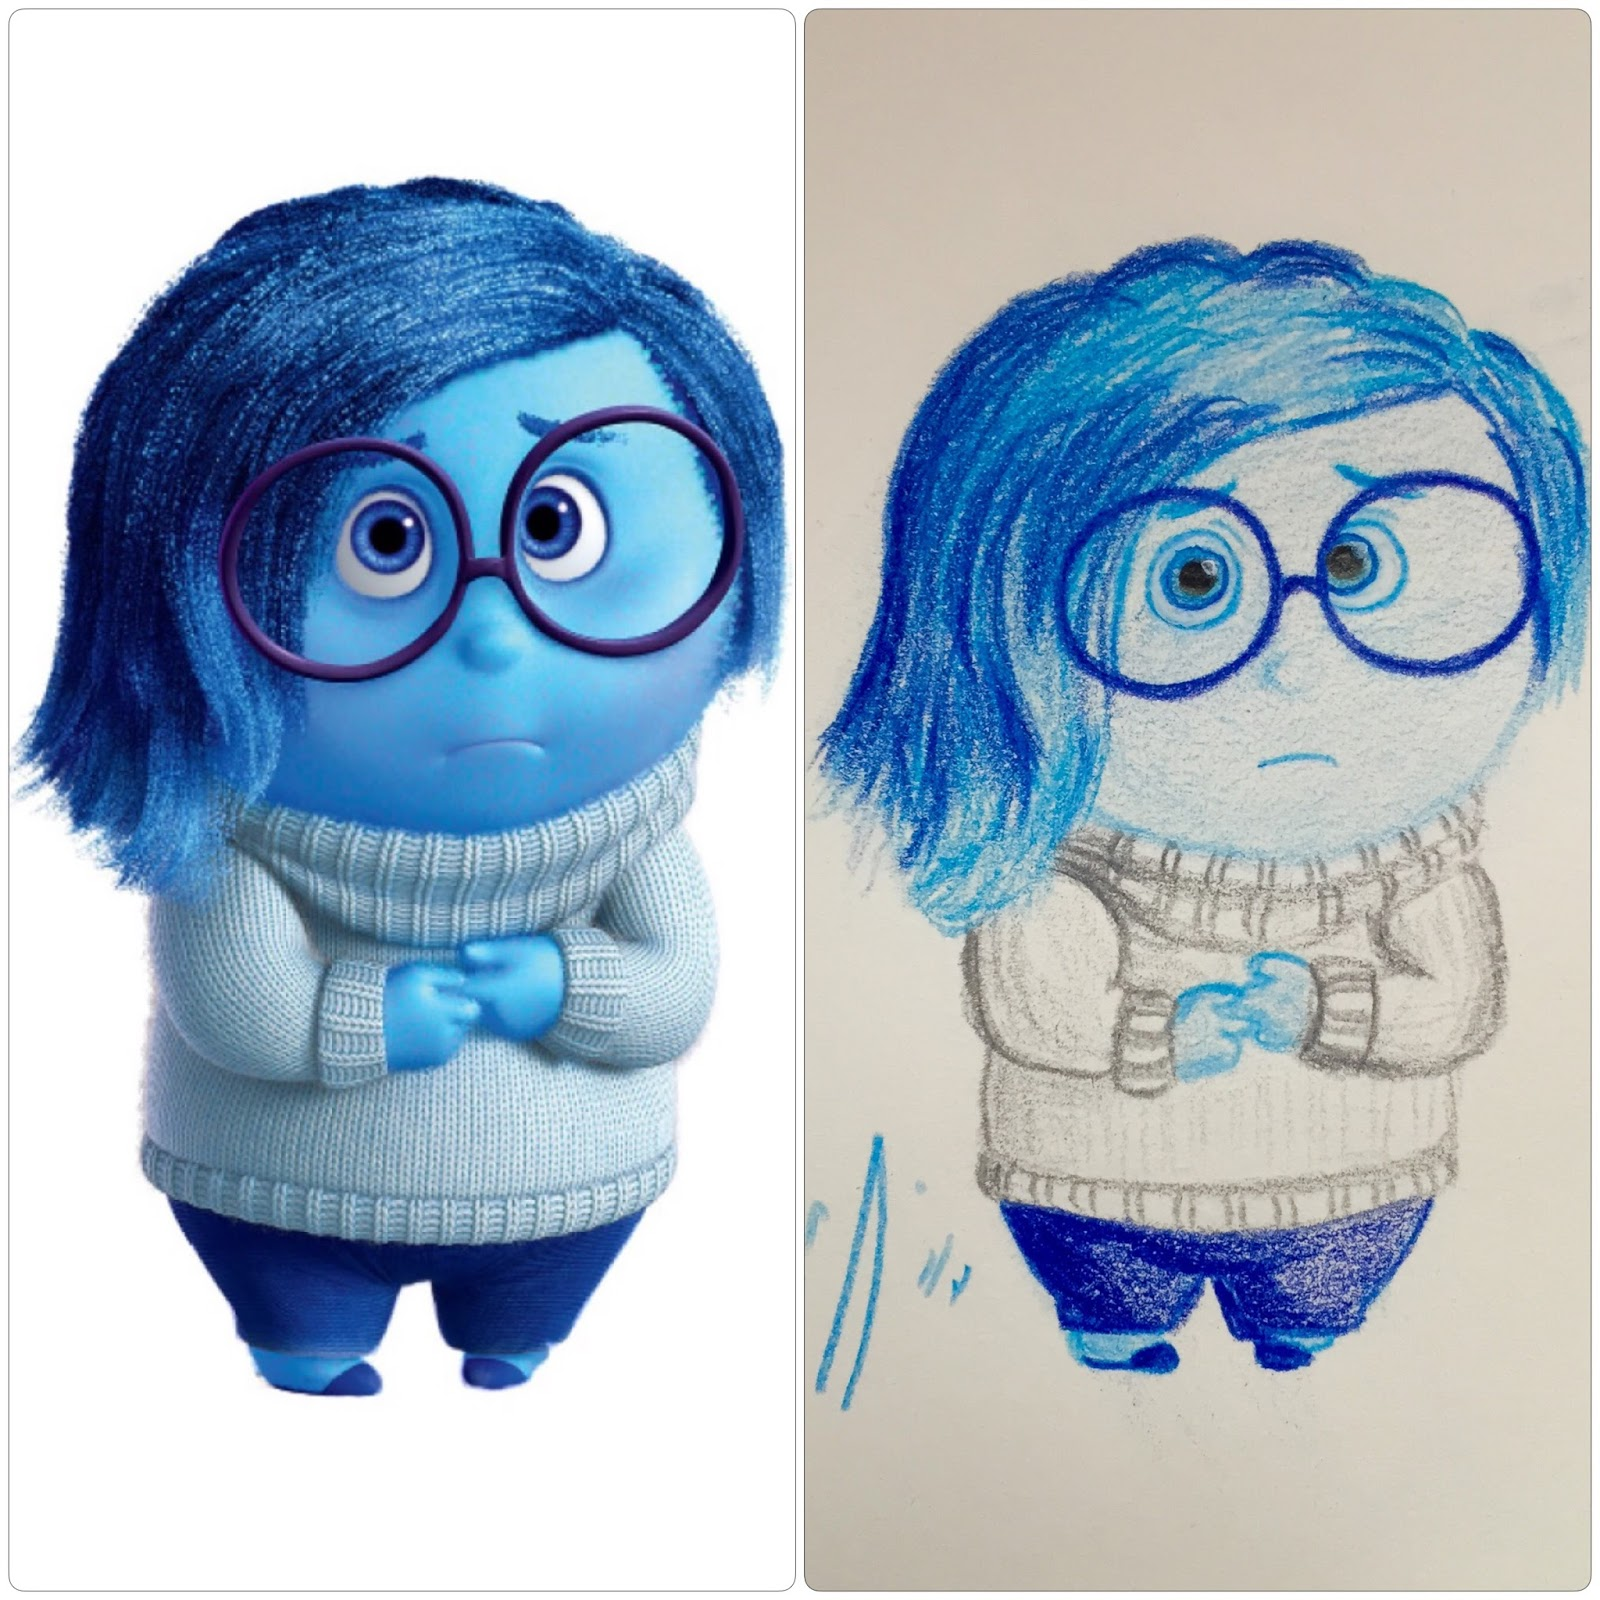 My Little Place: Inside Out | Disgust, Fear, Sadness + a